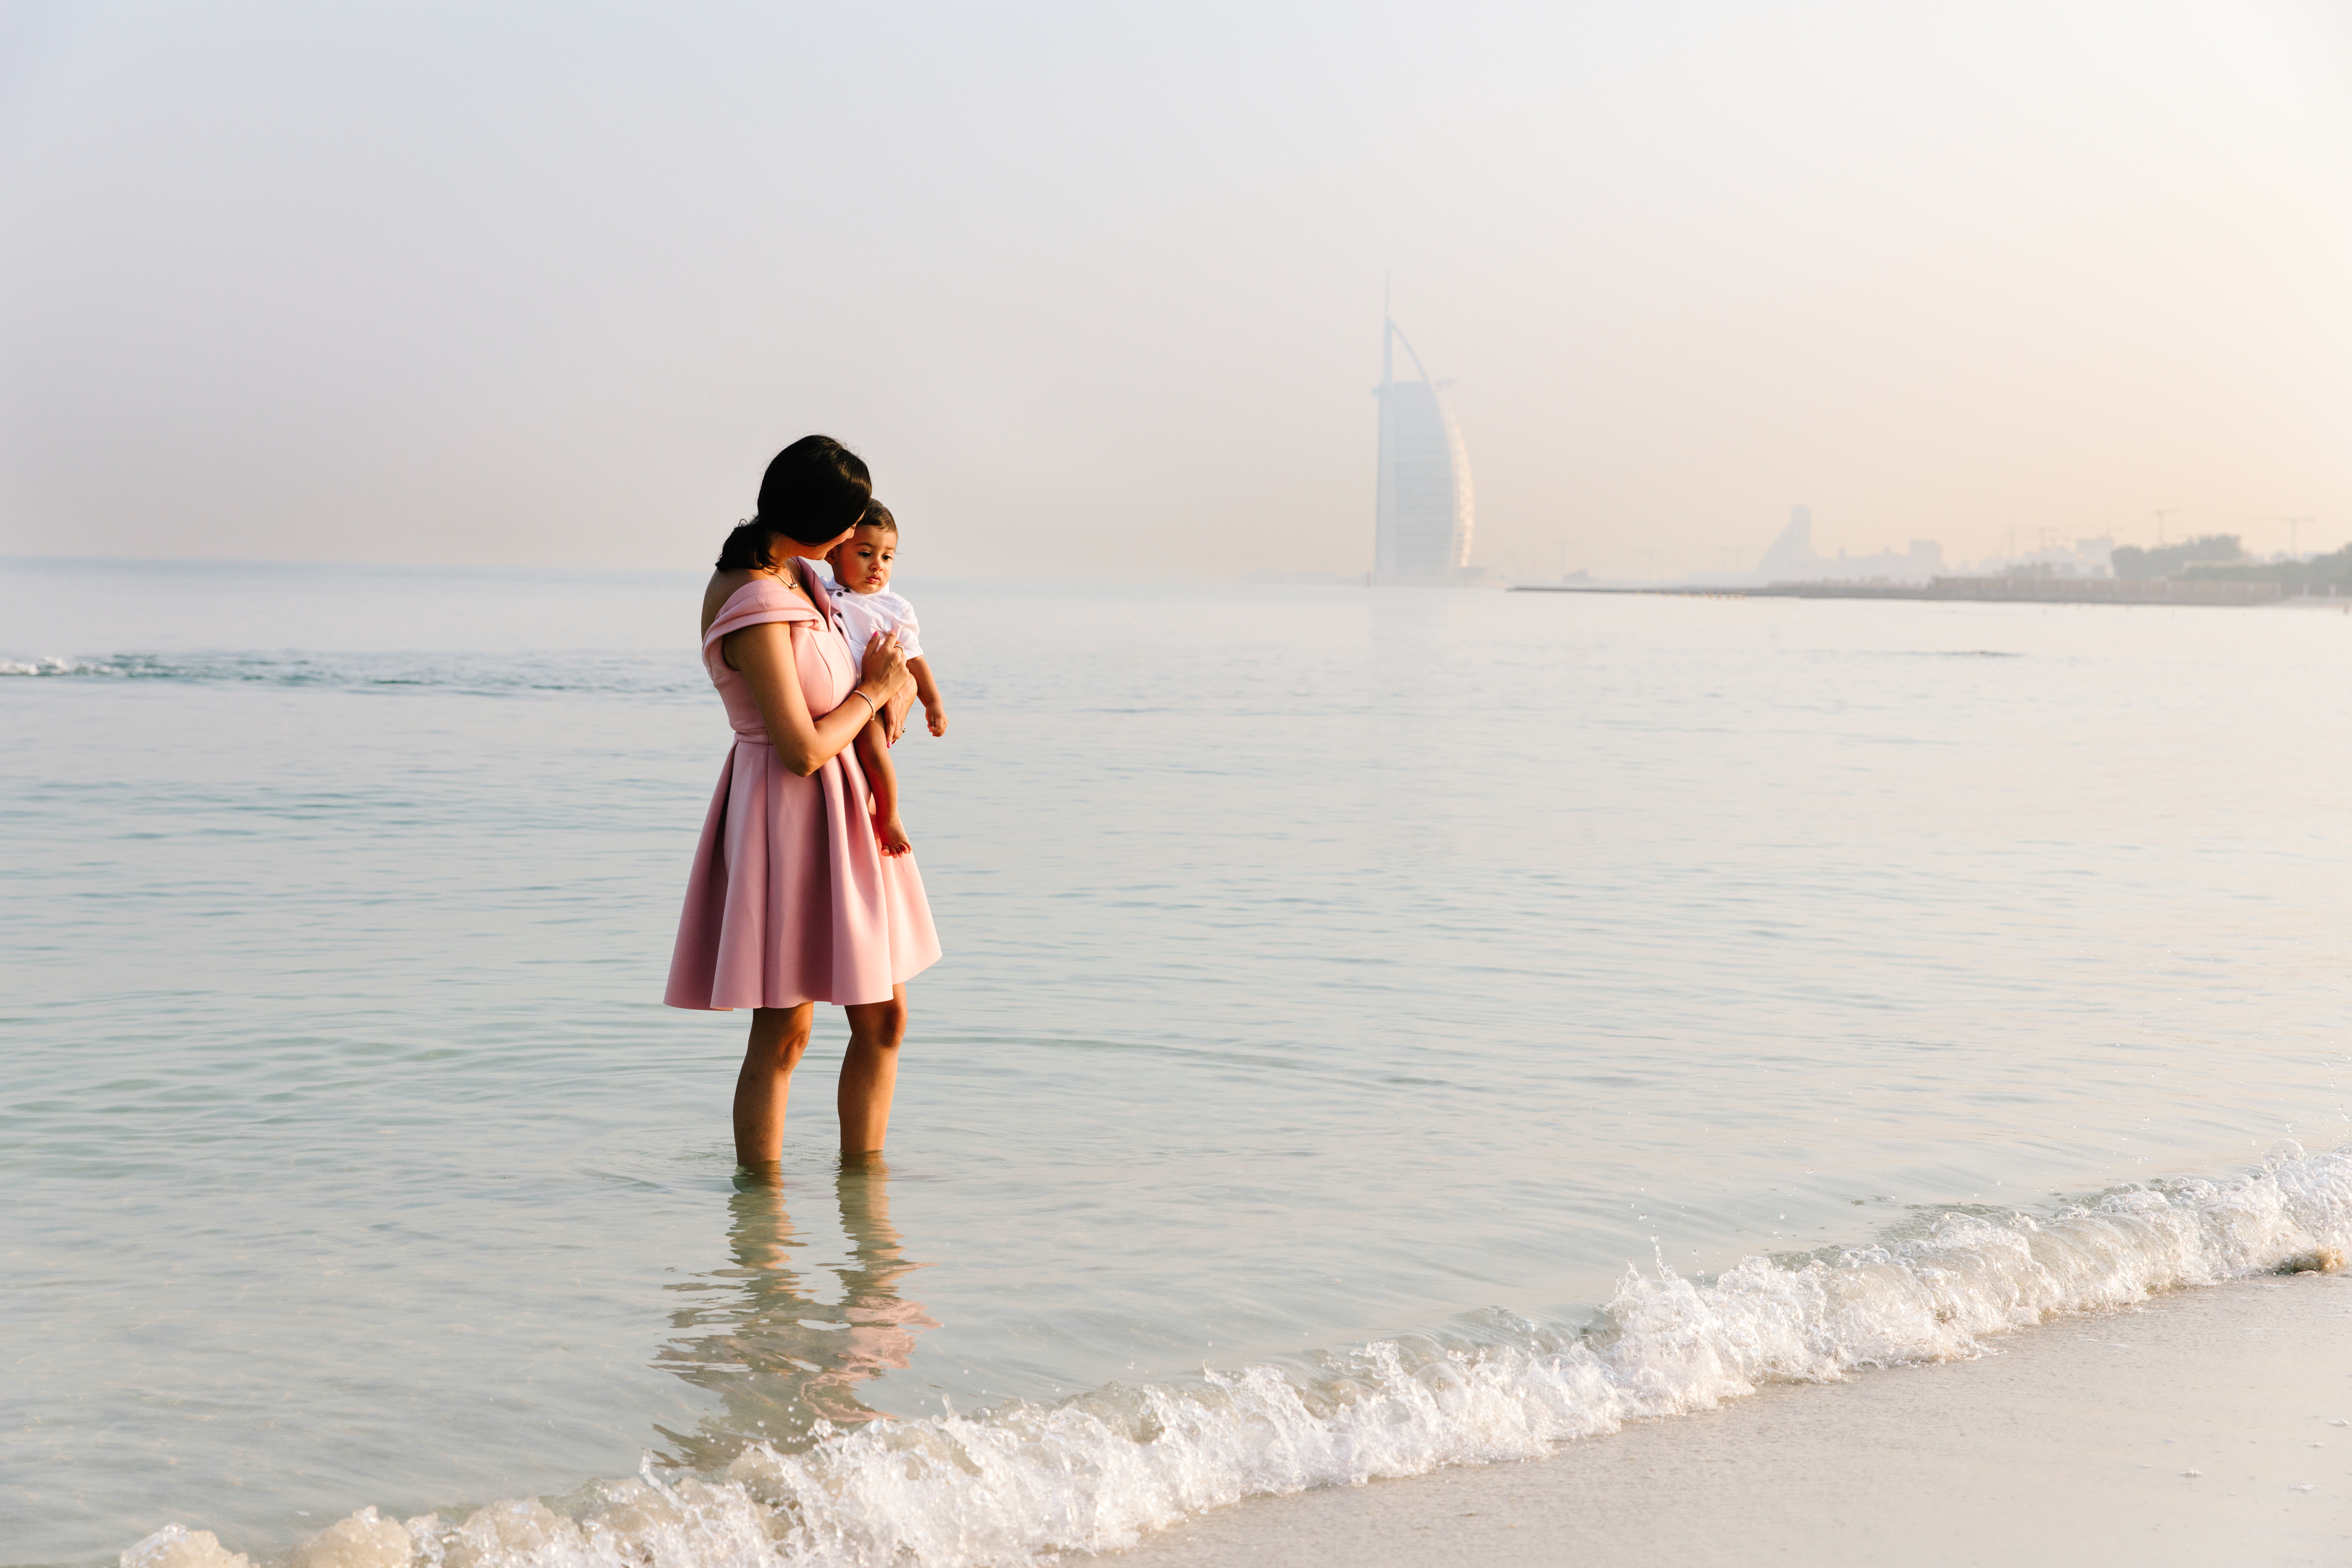 Beach Family photographer dubai